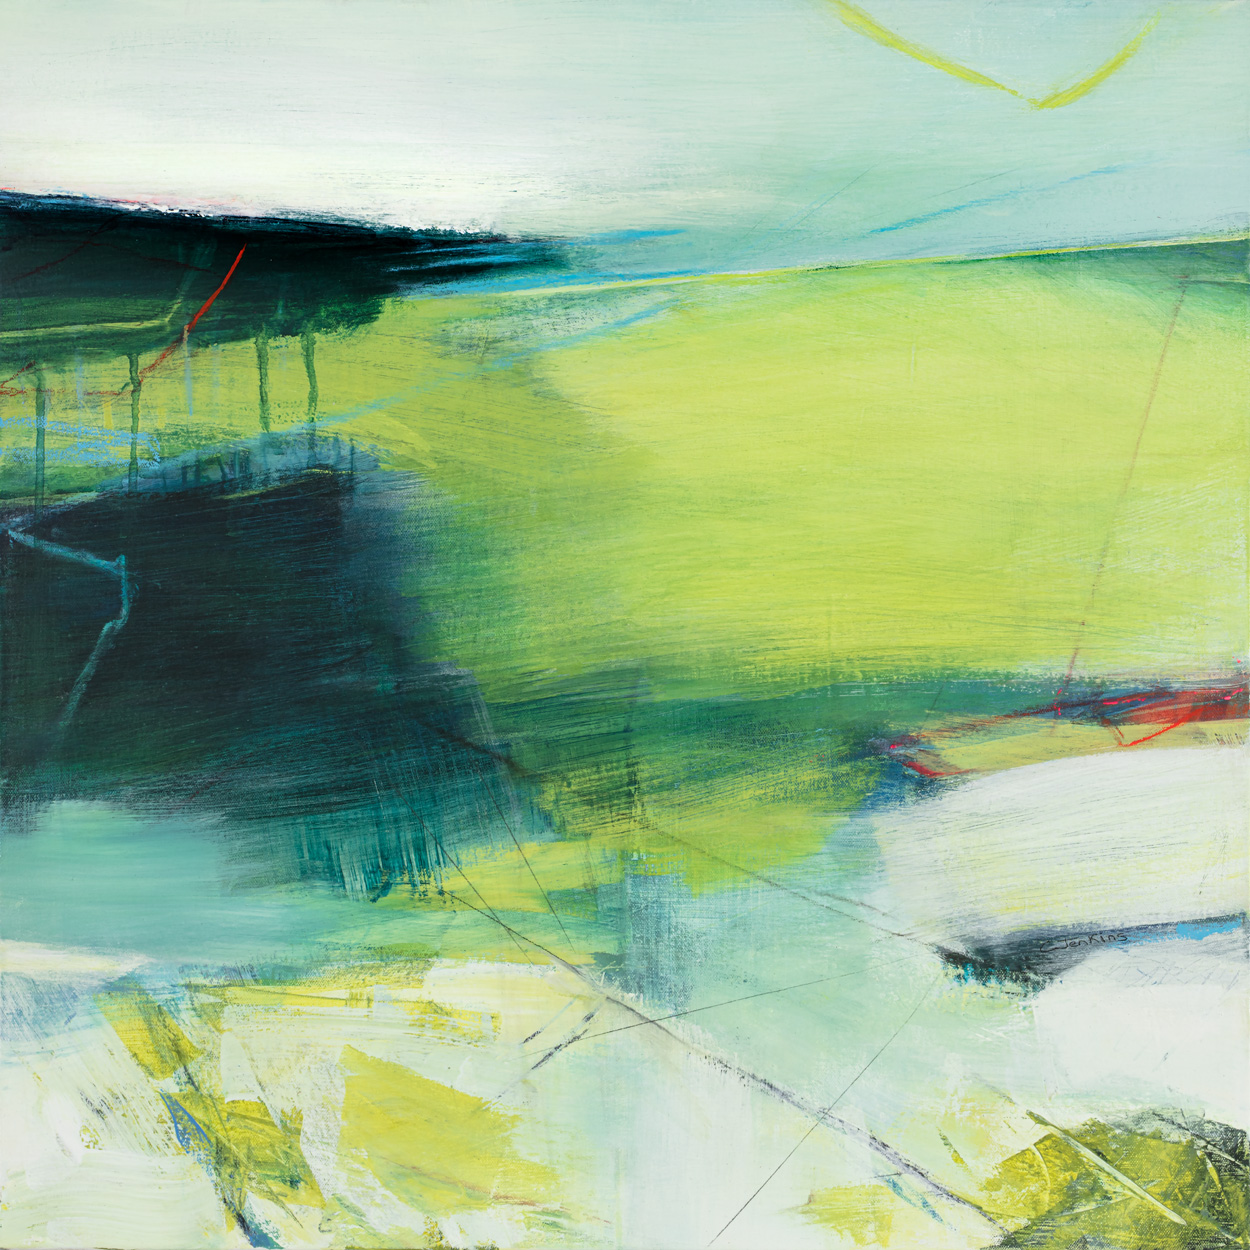 The blues and greens of this abstract landscape by Carol Jenkins give a sense of water dripping through branches and fresh leaves in Spring.